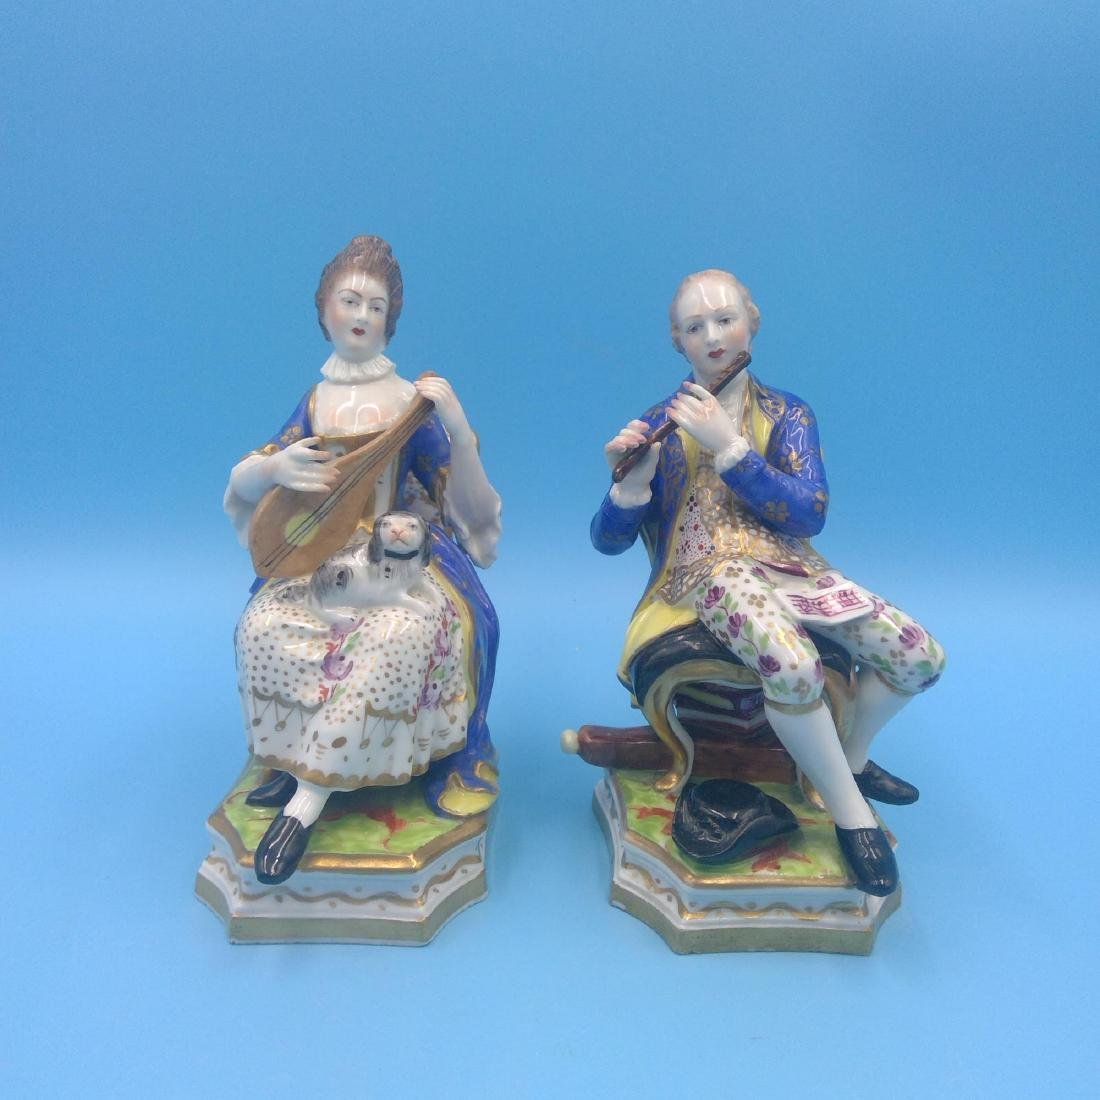 PAIR OF DERBY 18thC ENGLISH PORCELAIN FIGURINES